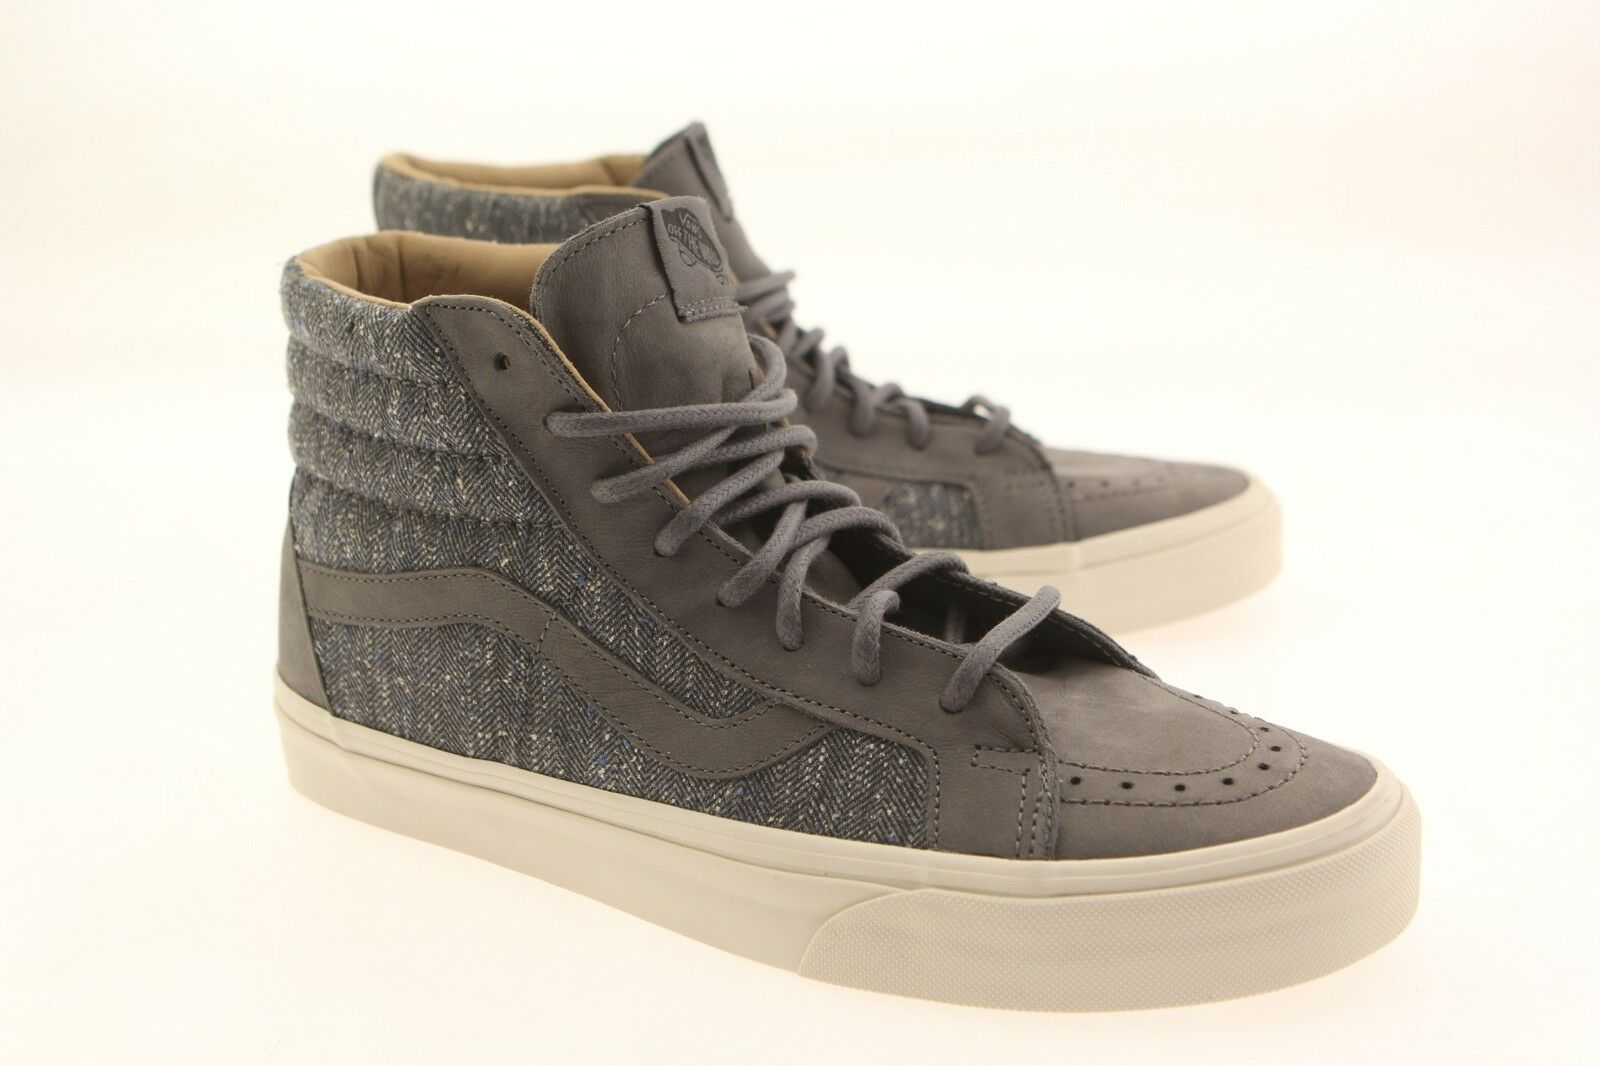 Vans Men SK8-Hi Reissue DX - Tweed grau tweed VN0A2ZJW5